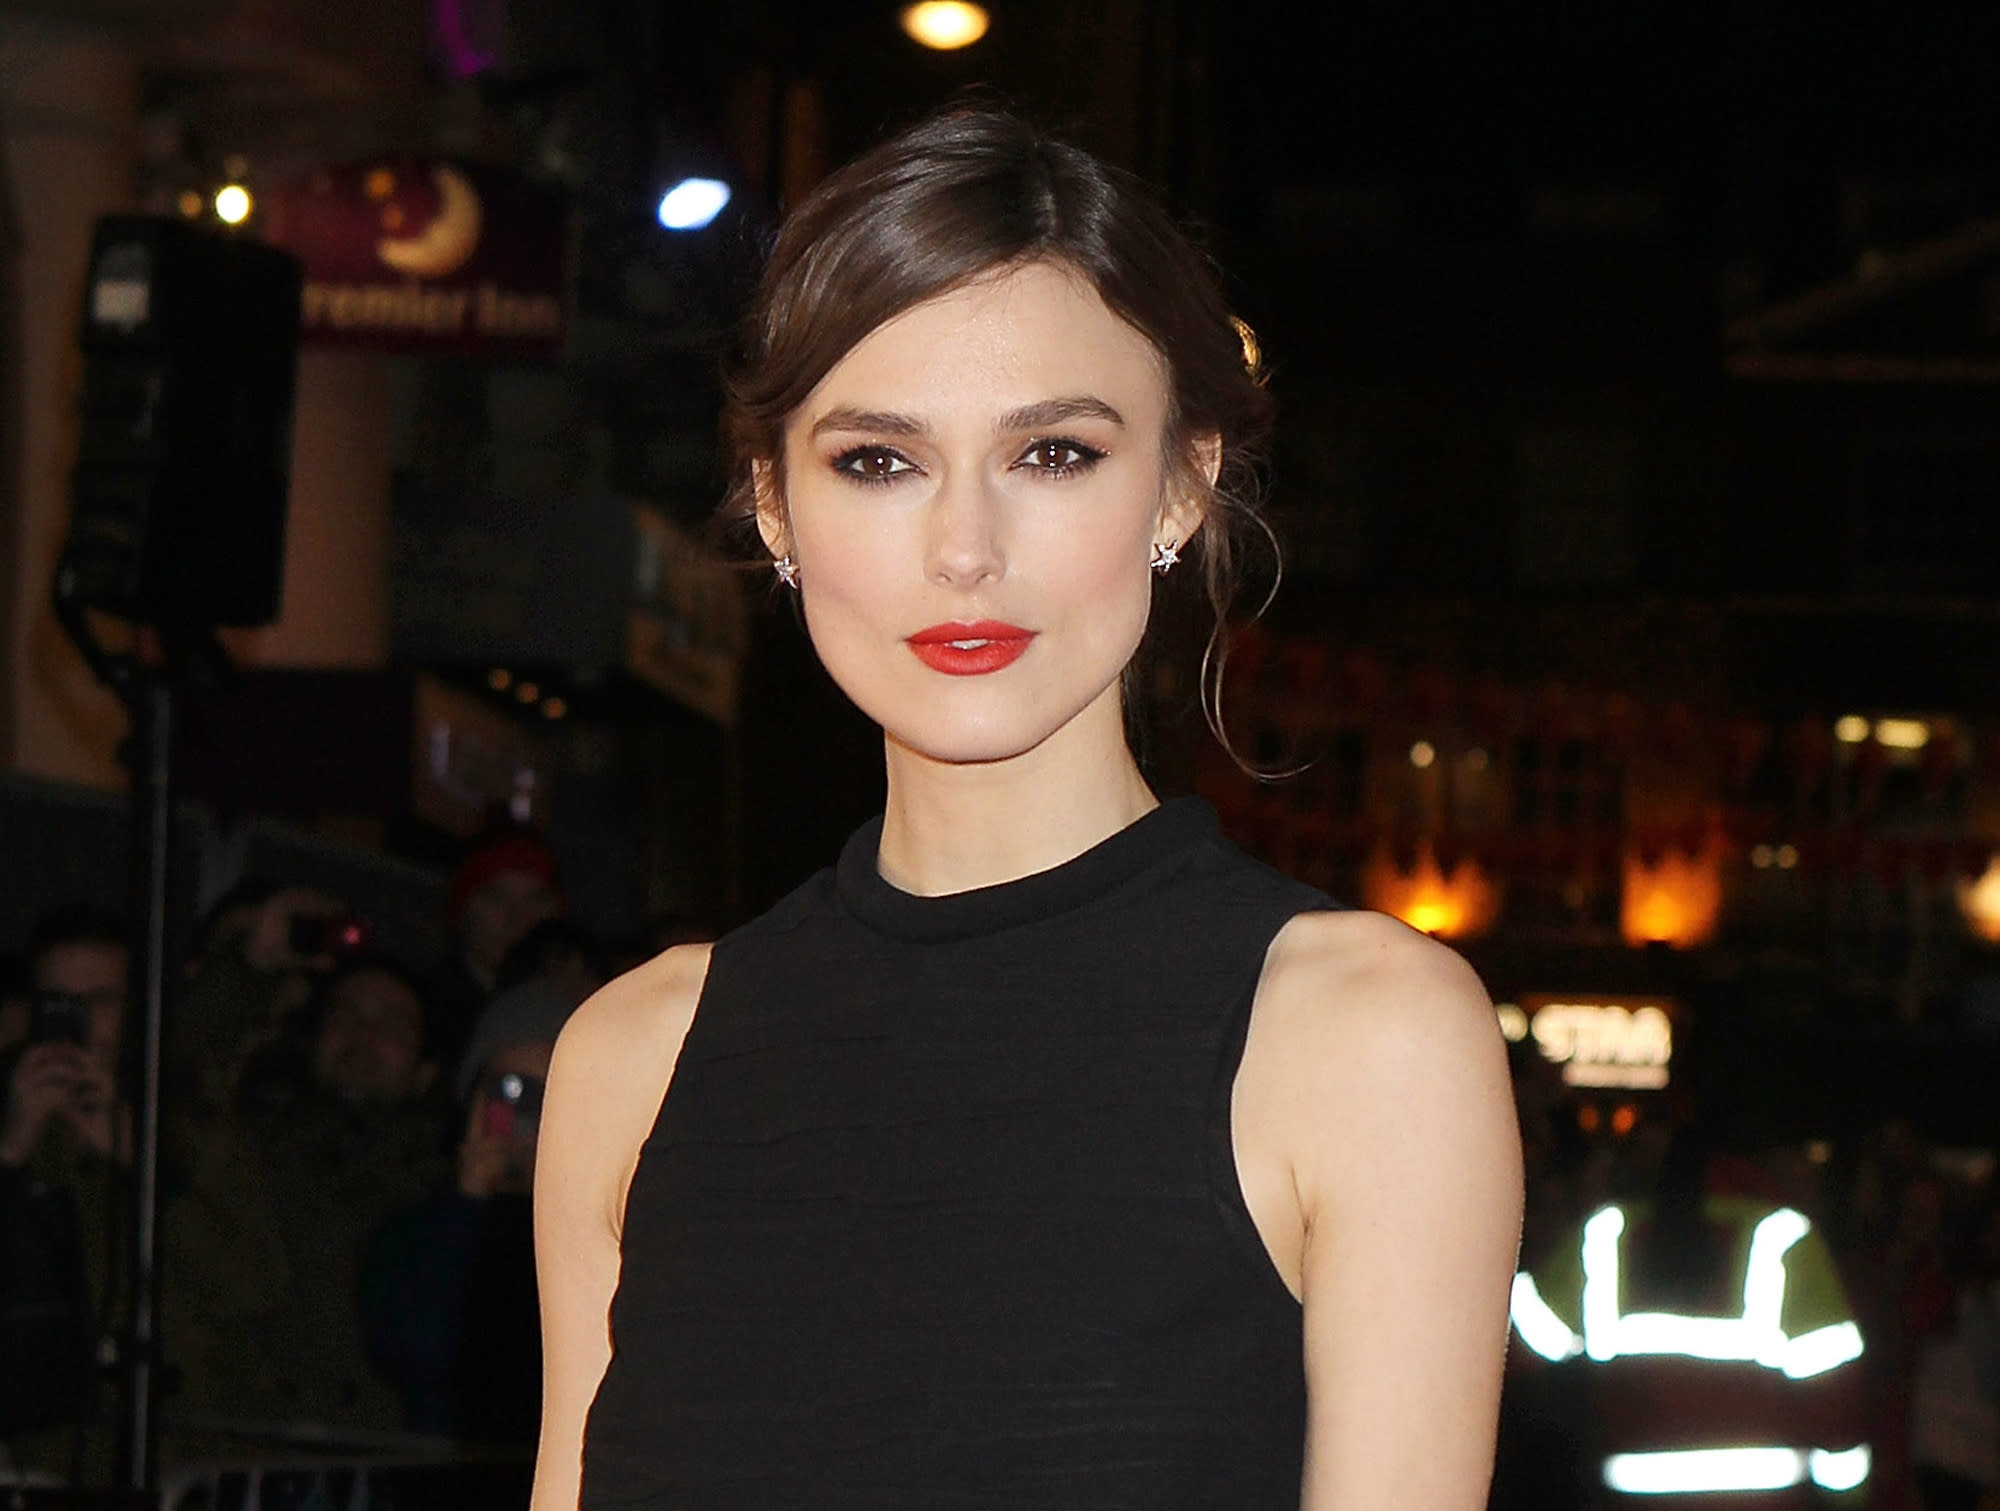 Injury forces Keira Knightley to miss Broadway show